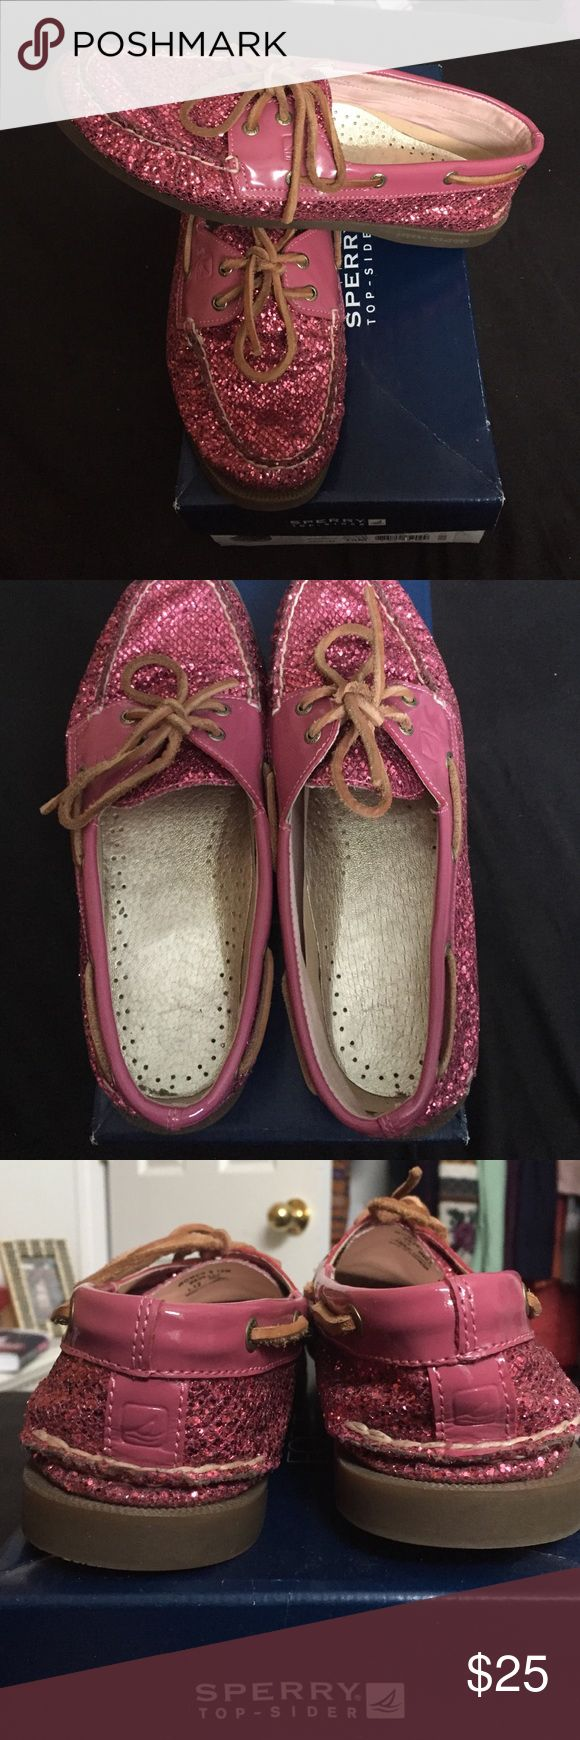 ☀️1 HOUR SALE  Pink Glitter Sperry Top-Sider Shoes Very good condition. No weird smells, holes, or stains. As far as I can tell there are no scuffs. Lightly worn, so these still look amazing. Super cute with any outfit. Comes with original box. Please ask for more pictures or information as needed. Sperry Shoes